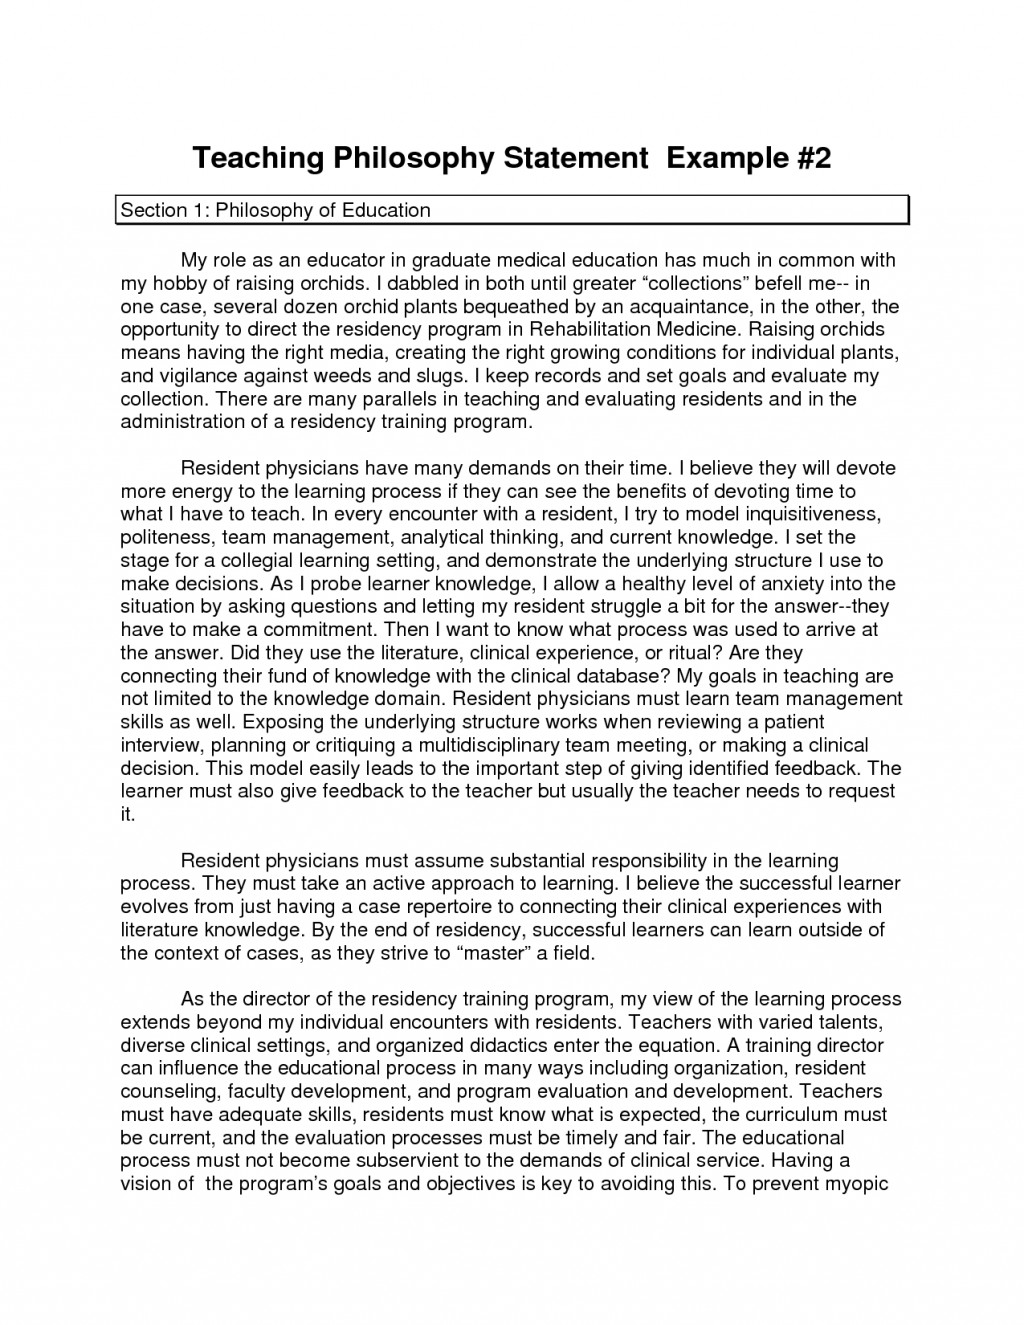 010 What Is An Exploratory Essay Example Definition Writing Introduction Examples Statement Of Teaching Philosophy Mg5 Free Thesis Topics Fantastic The First Step In Meant By Meaning Large